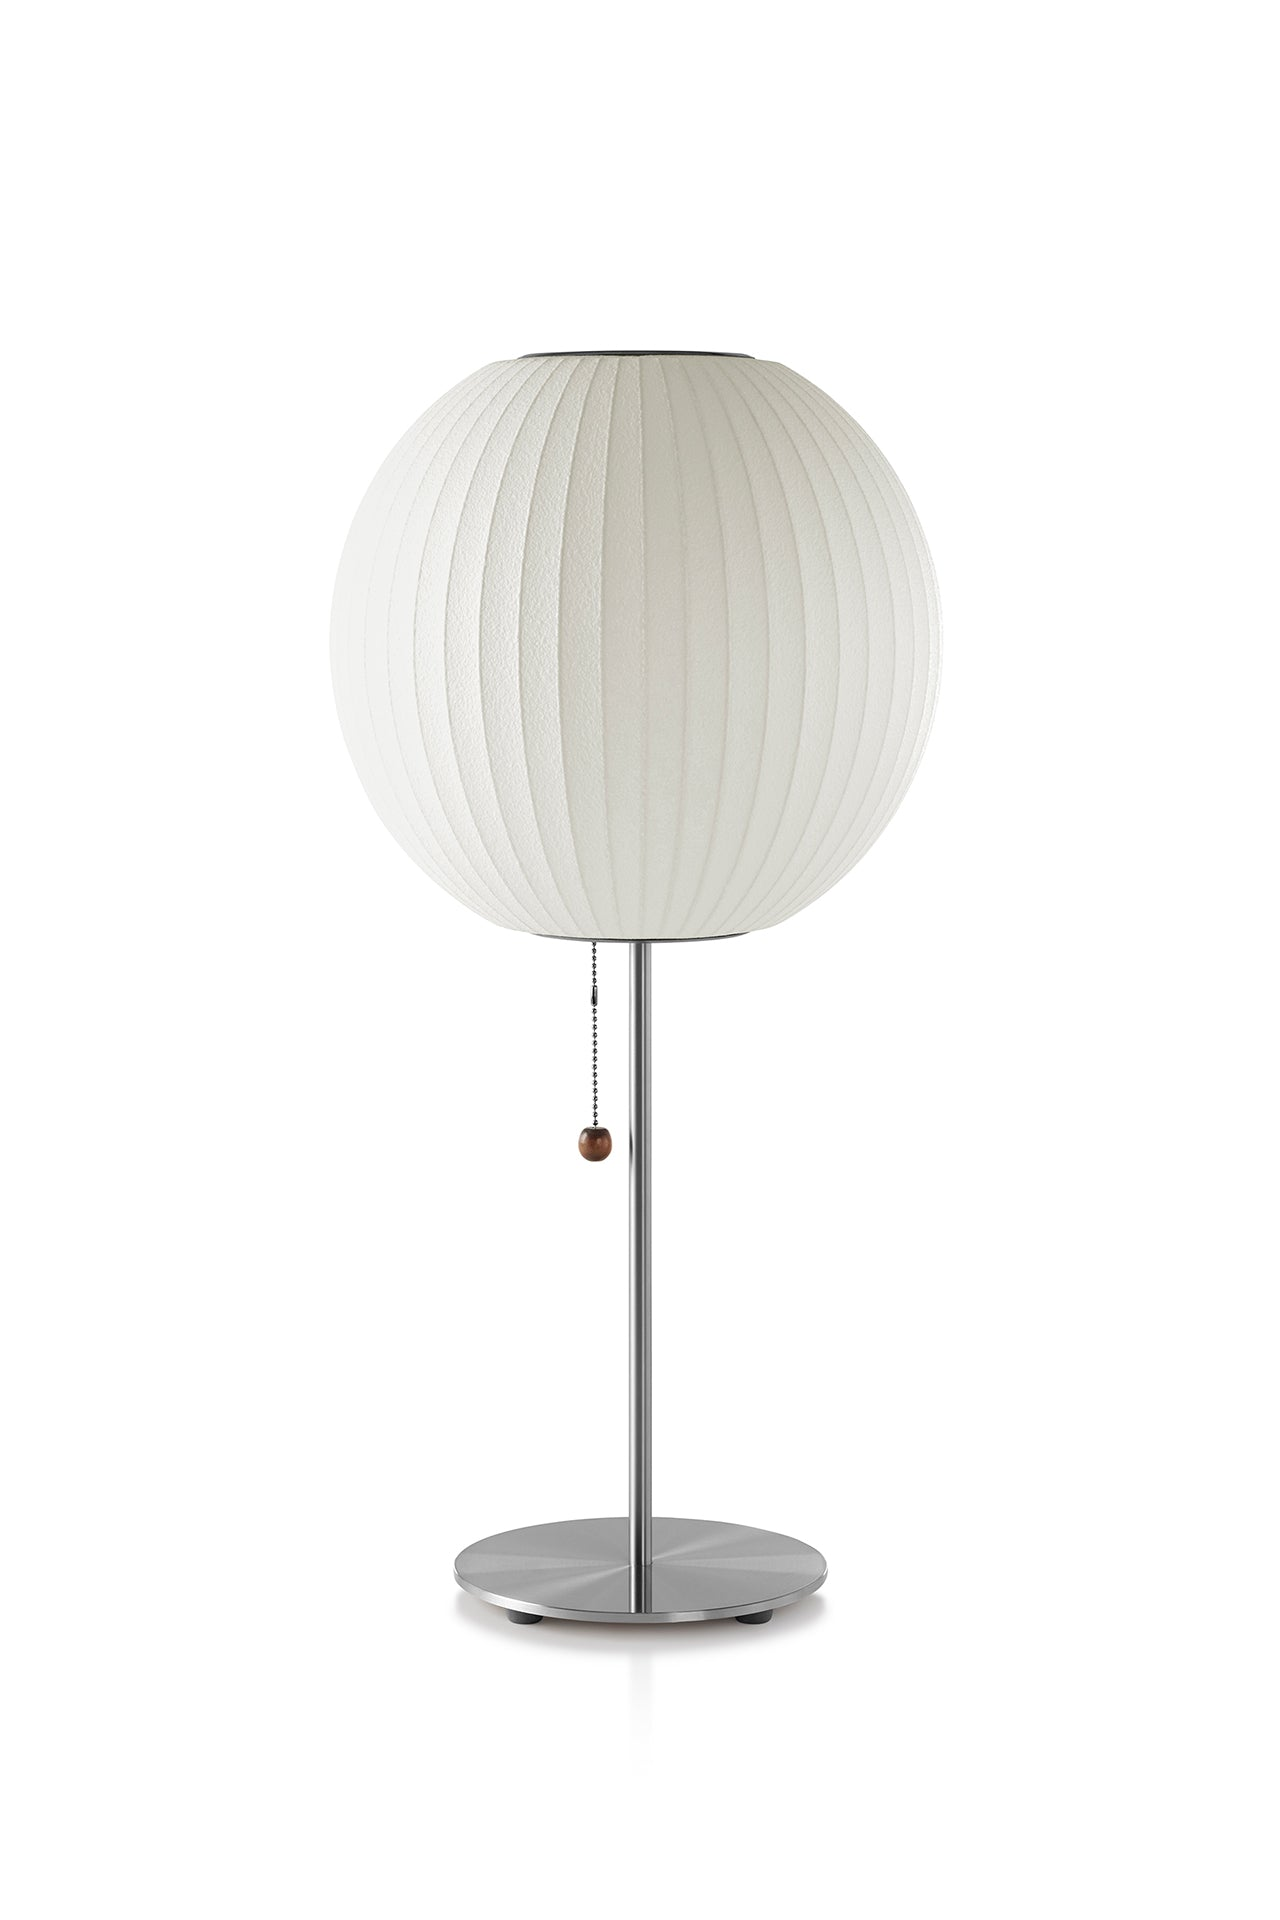 Nelson Ball Lotus Table Lamp